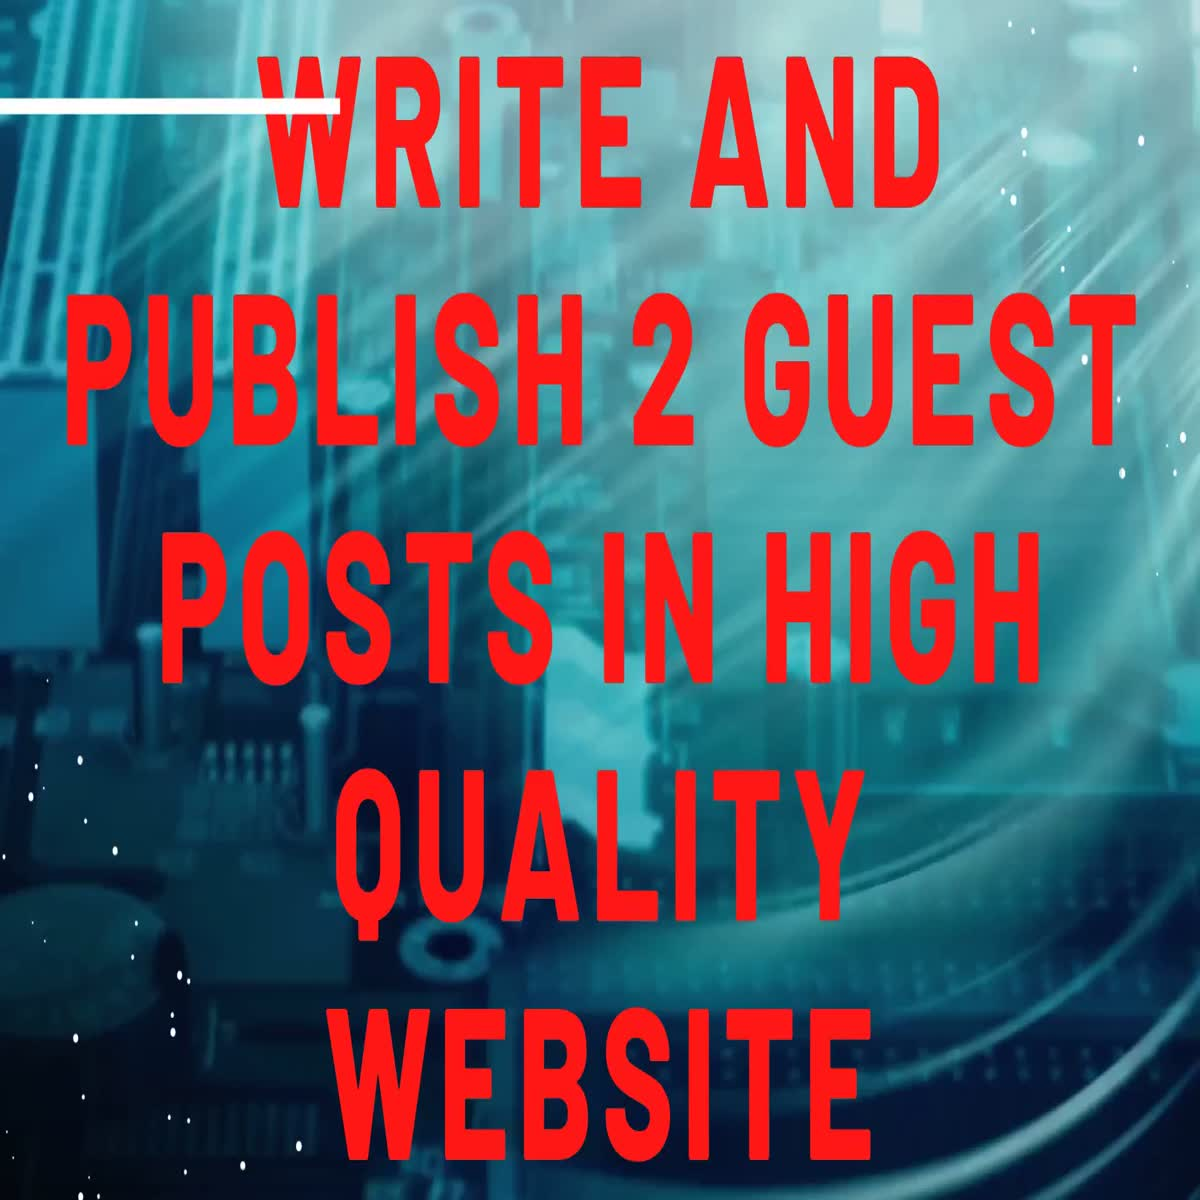 write and publish 2 guest posts in high quality website